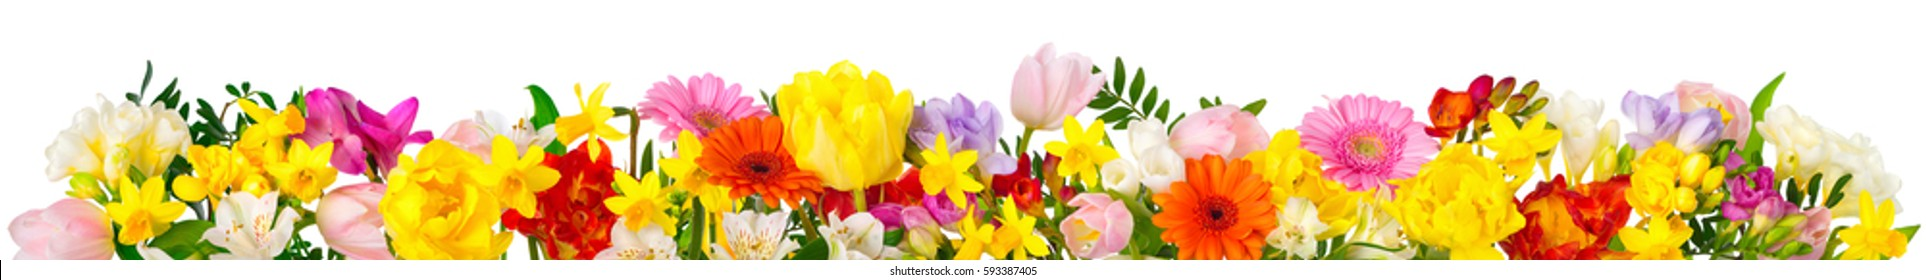 Flowers in cheerful colors, studio isolated on white, in banner format or as a seasonal natural border for spring and summer